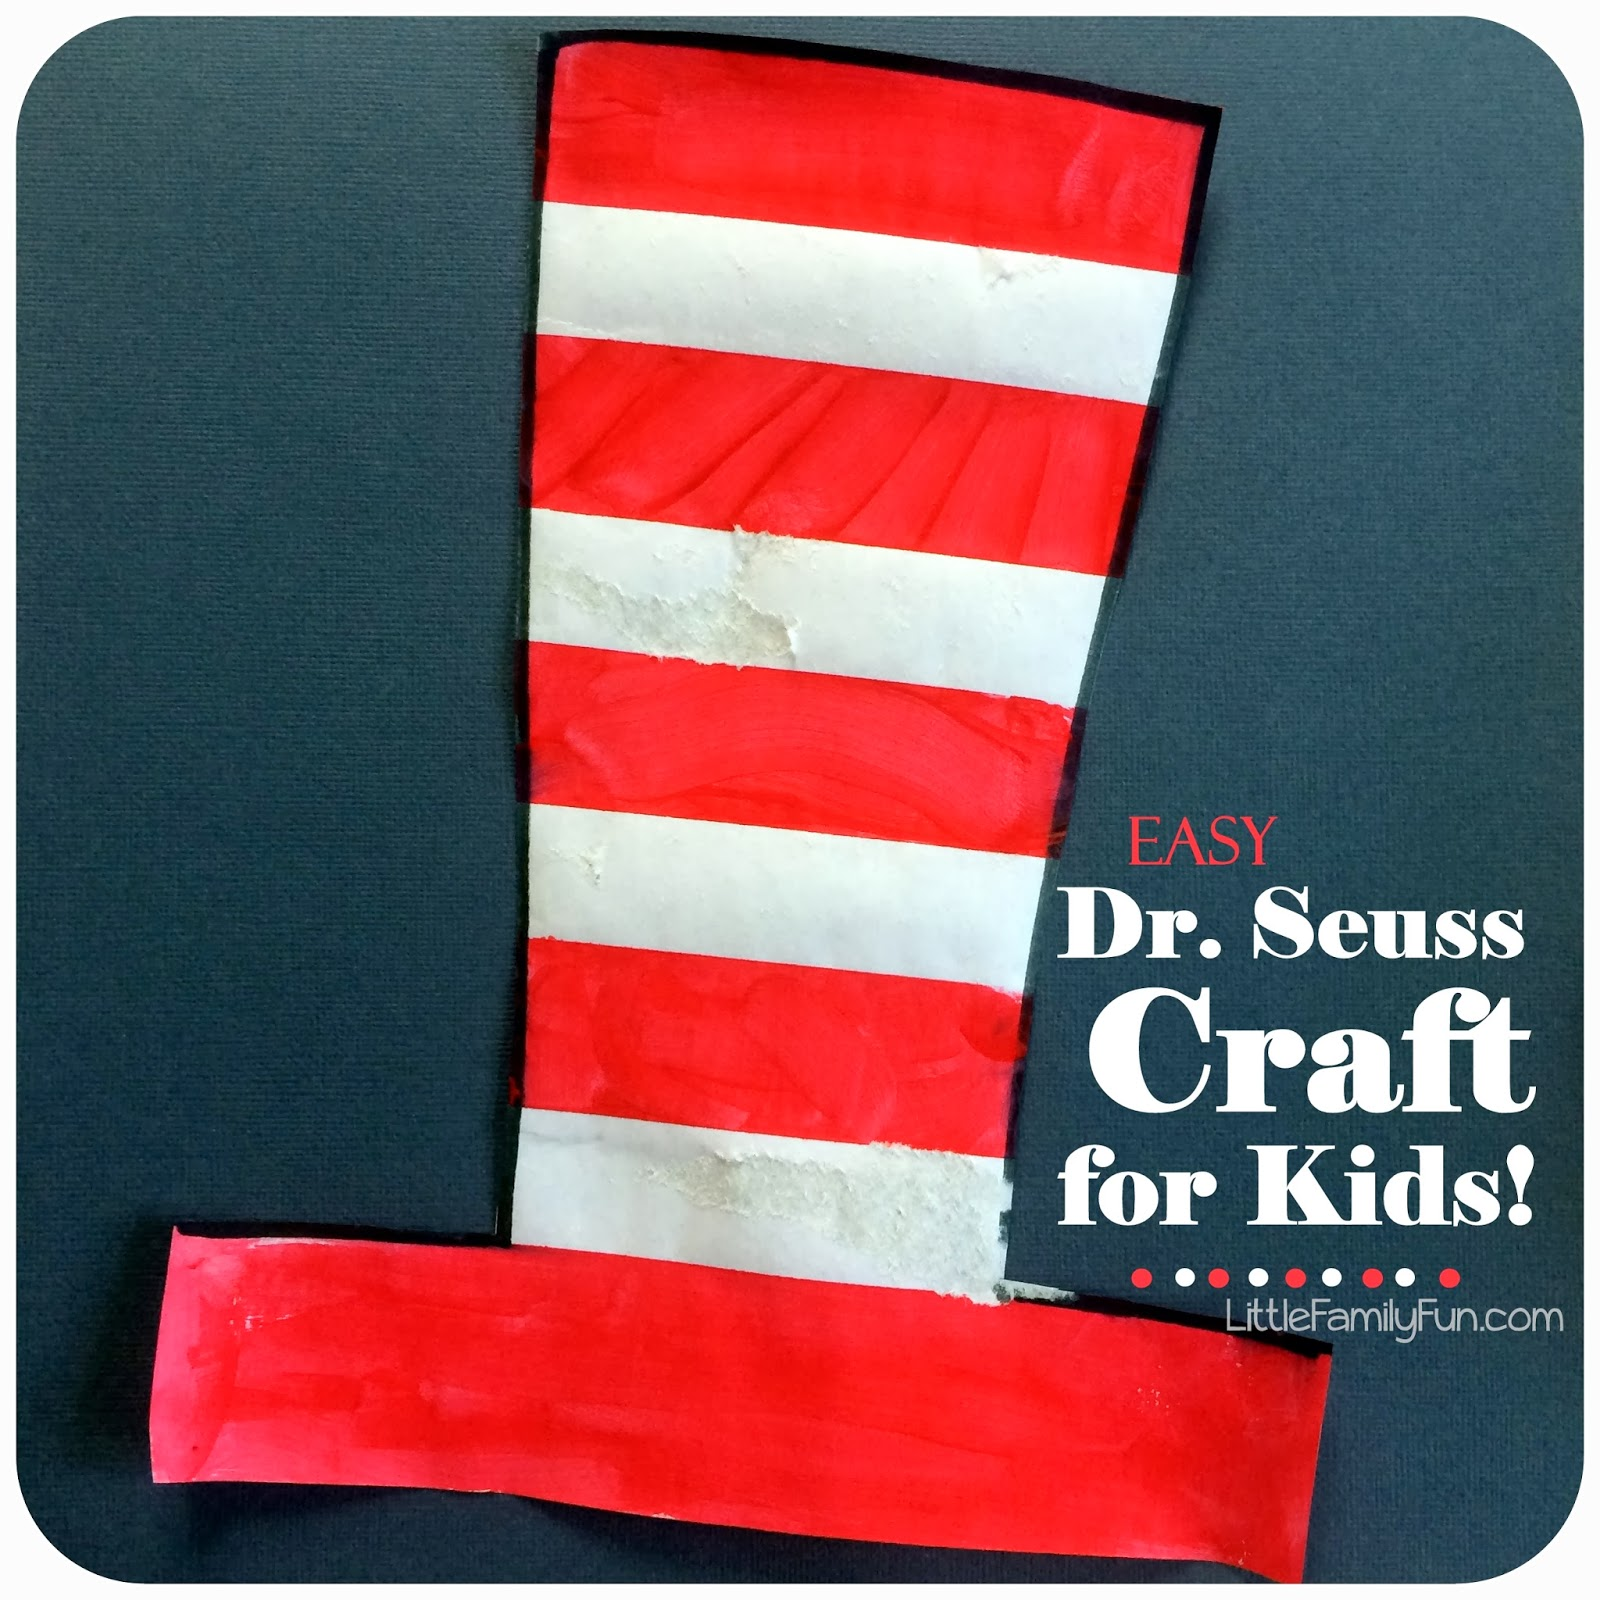 http://www.littlefamilyfun.com/2014/02/easy-dr-seuss-craft.html